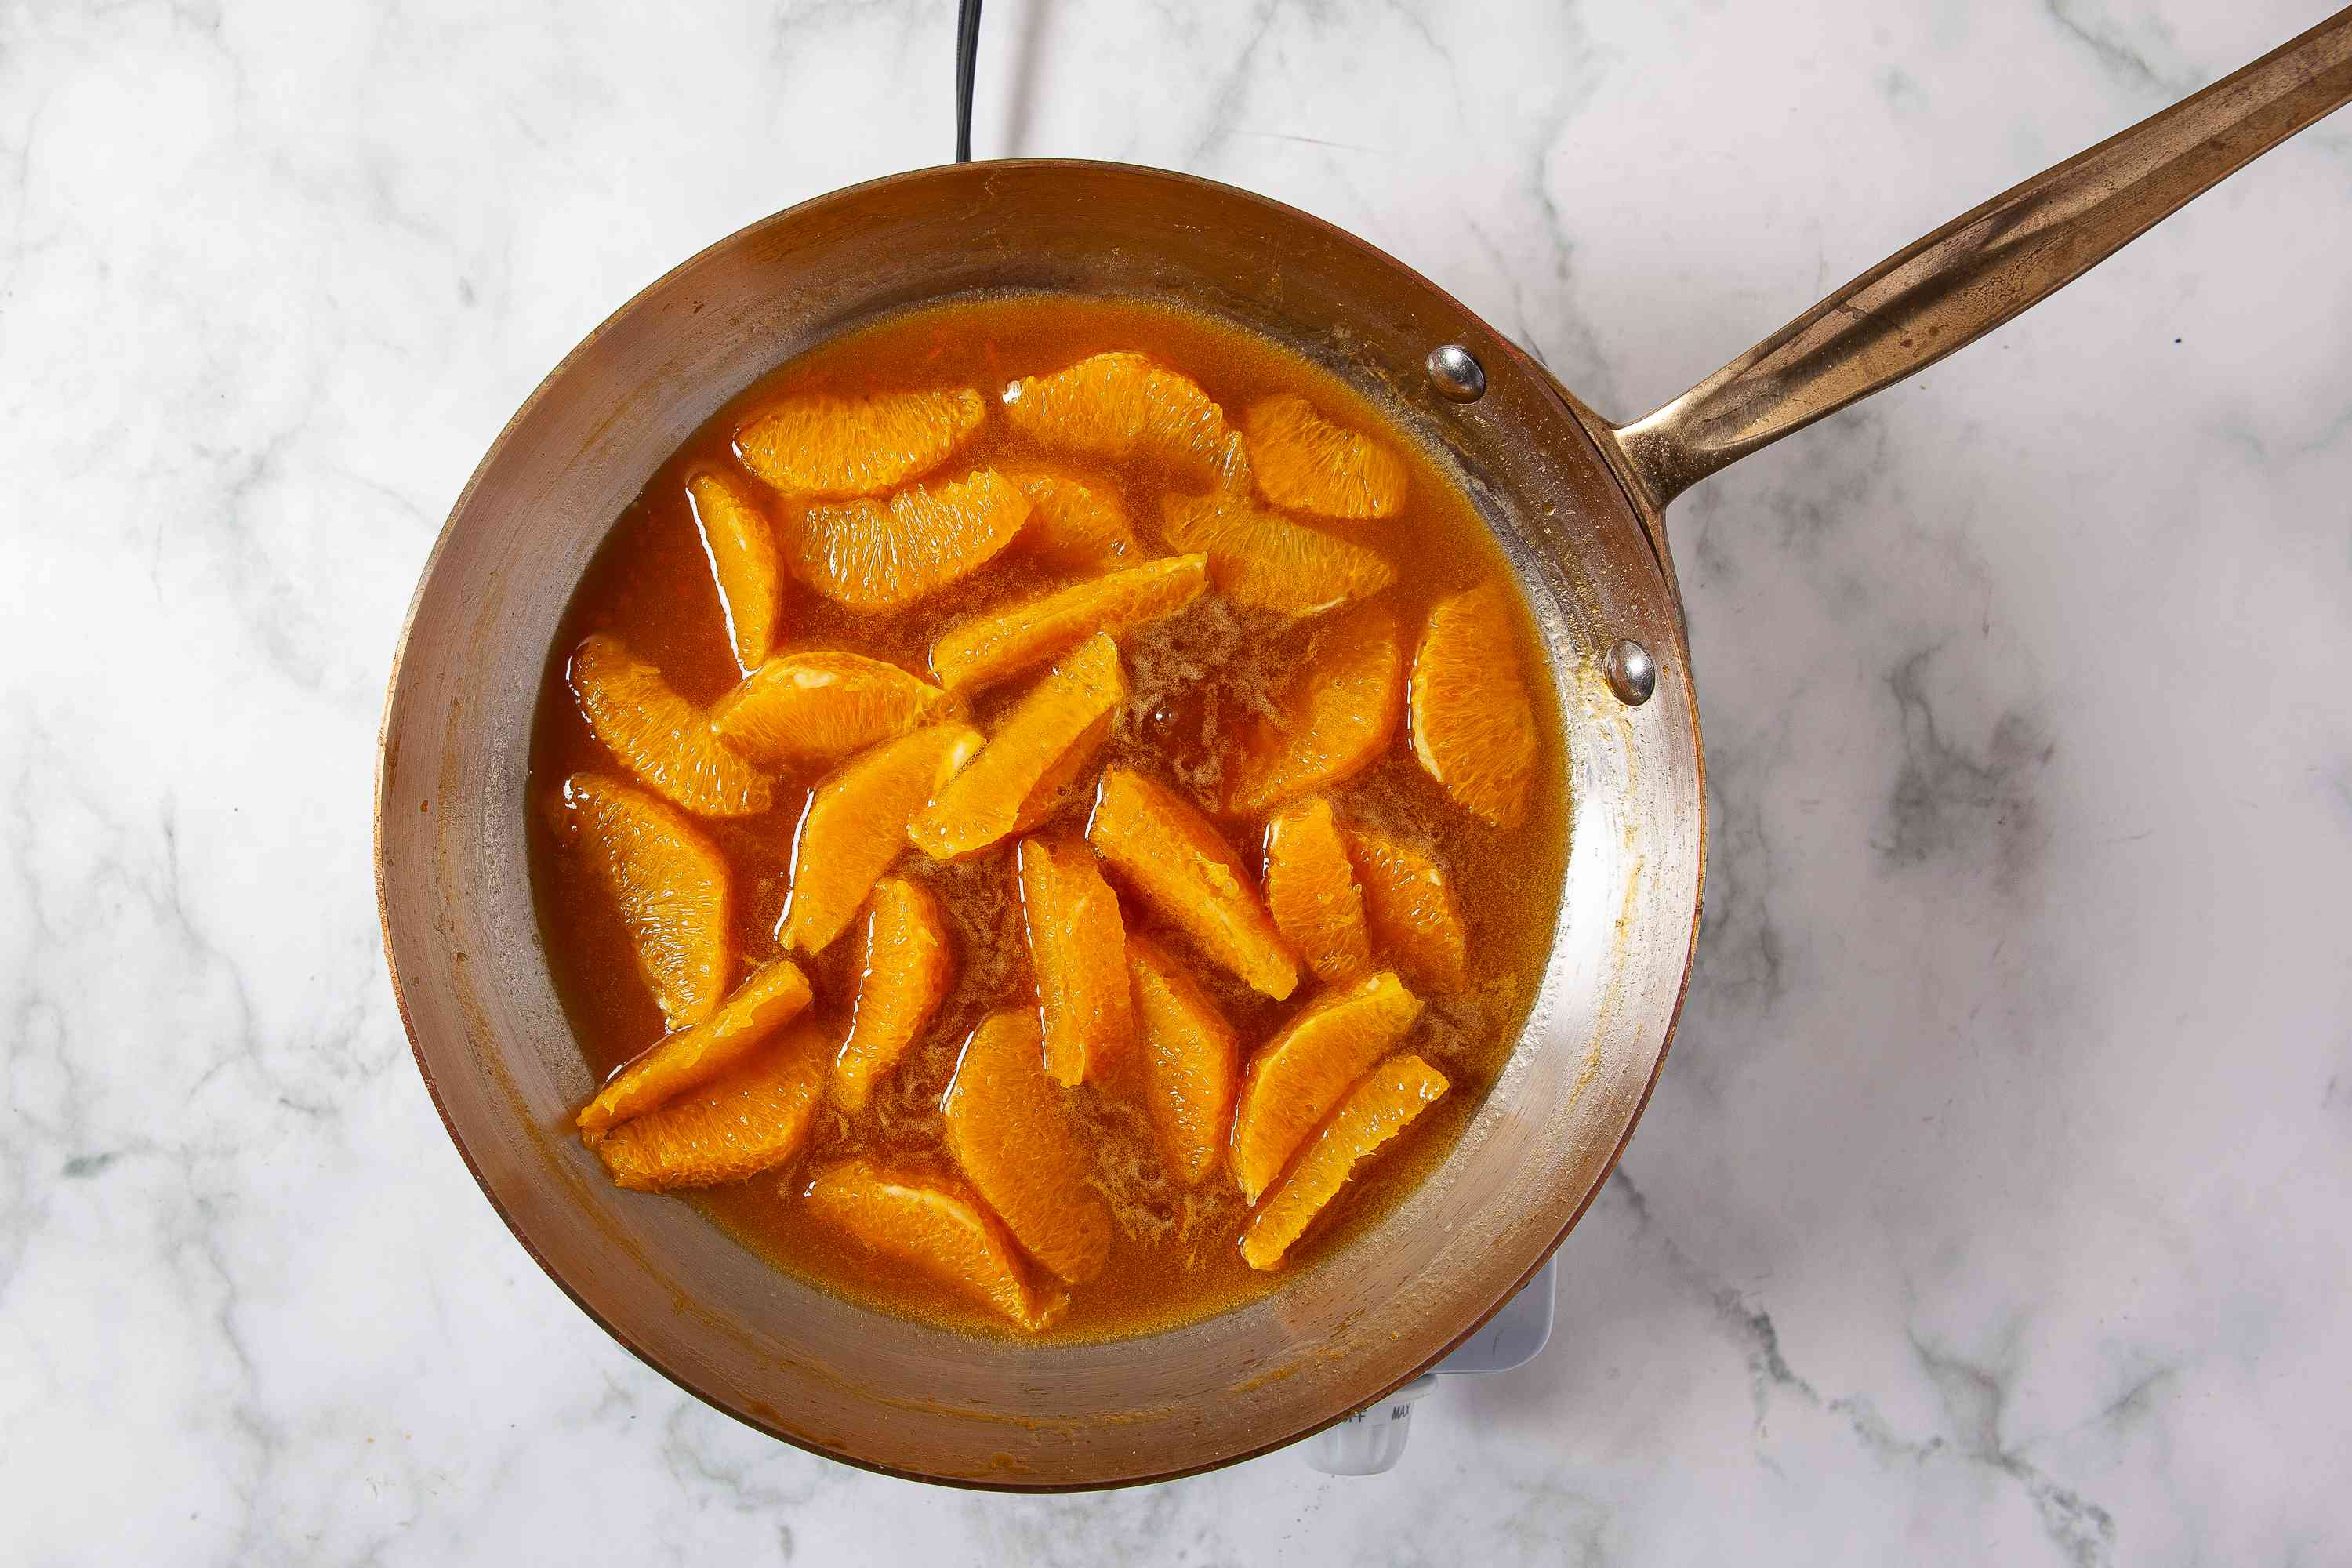 orange sections added to the sauce in the pan